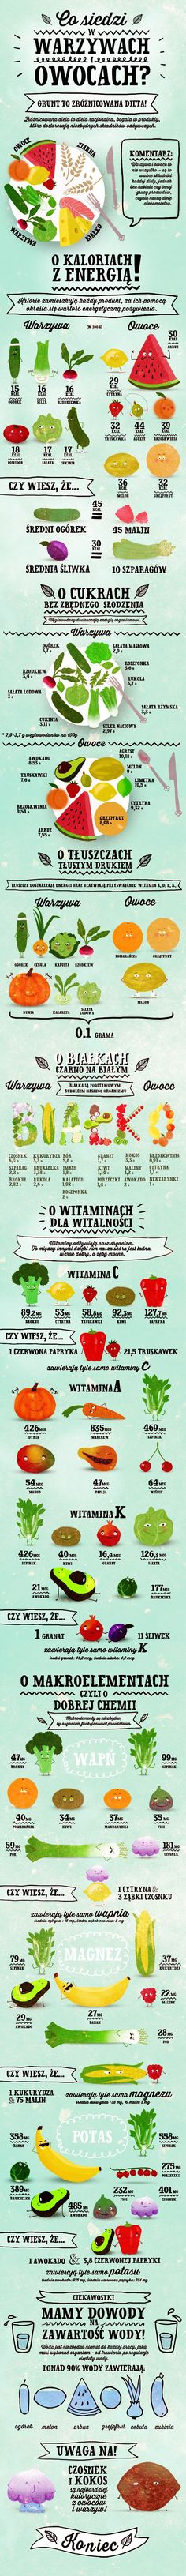 Co siedzi w owocach i warzywach Healthy Nutrition, Healthy Drinks, Healthy Tips, How To Stay Healthy, Healthy Eating, Healthy Recipes, Balanced Vegetarian Diet, Food Facts, Healthier You